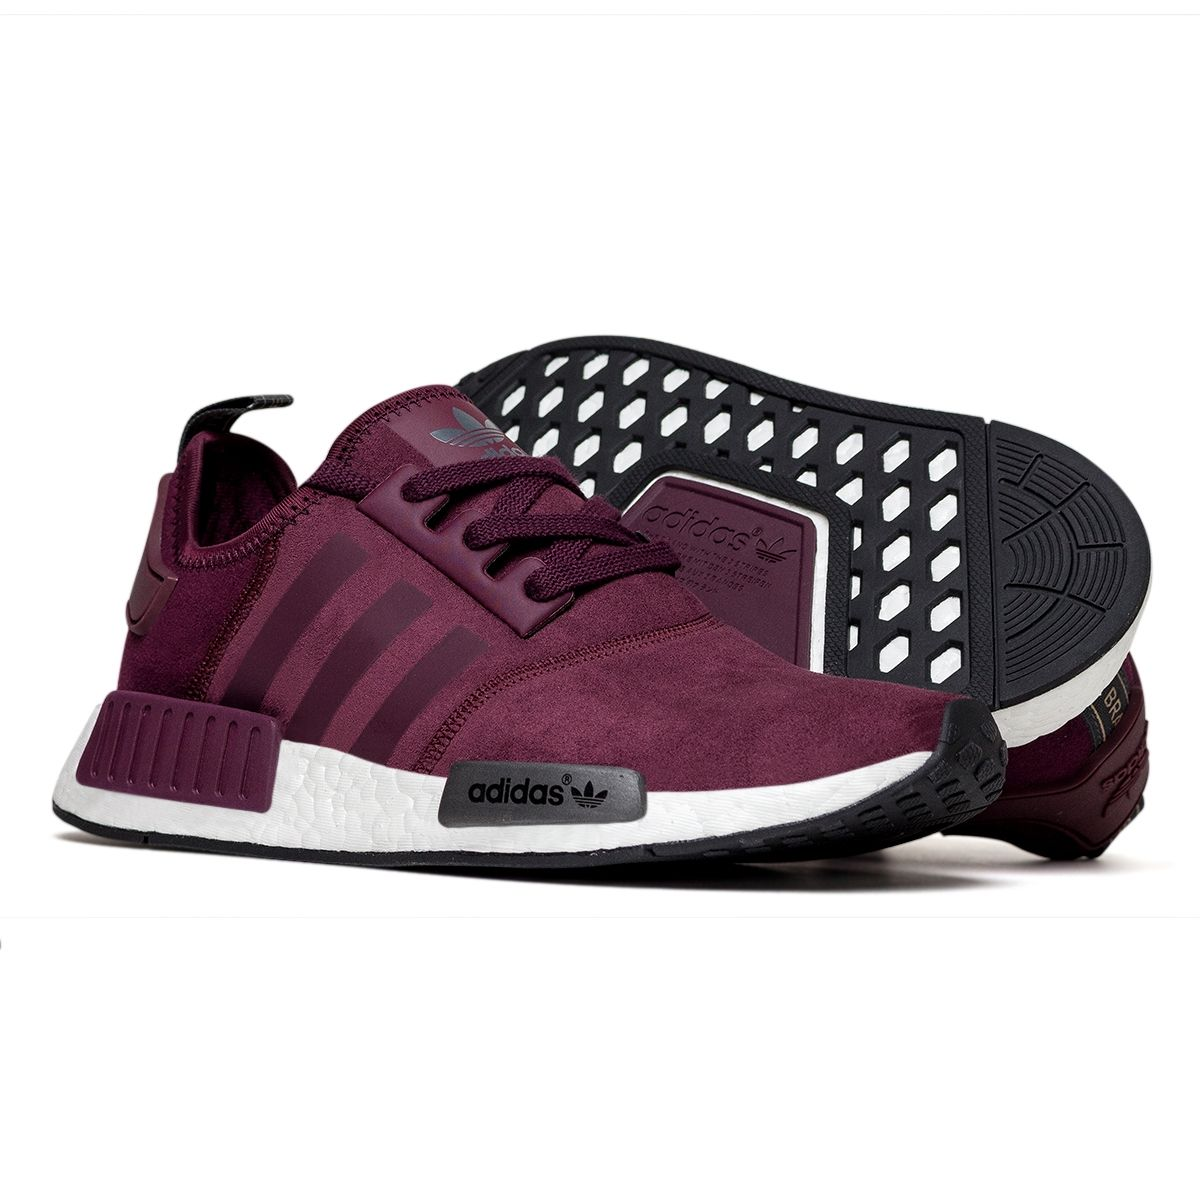 separation shoes f0436 9491a Adidas NMD Runner Feminino Burgundy